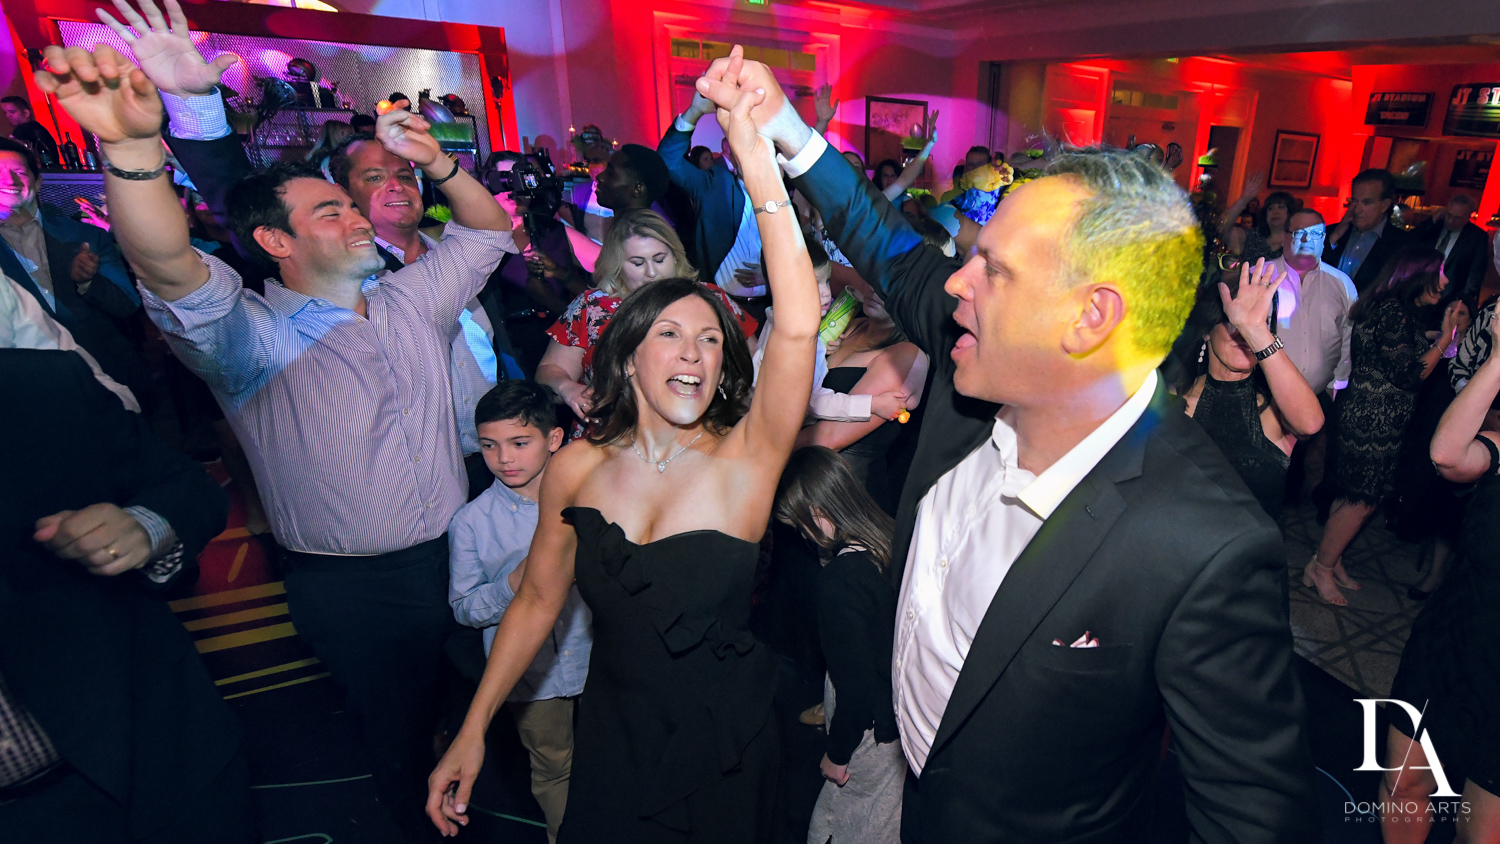 fun party pictures at Football Theme Bar Mitzvah at Temple Beth El and Royal Palm Yacht Club by Domino Arts Photography